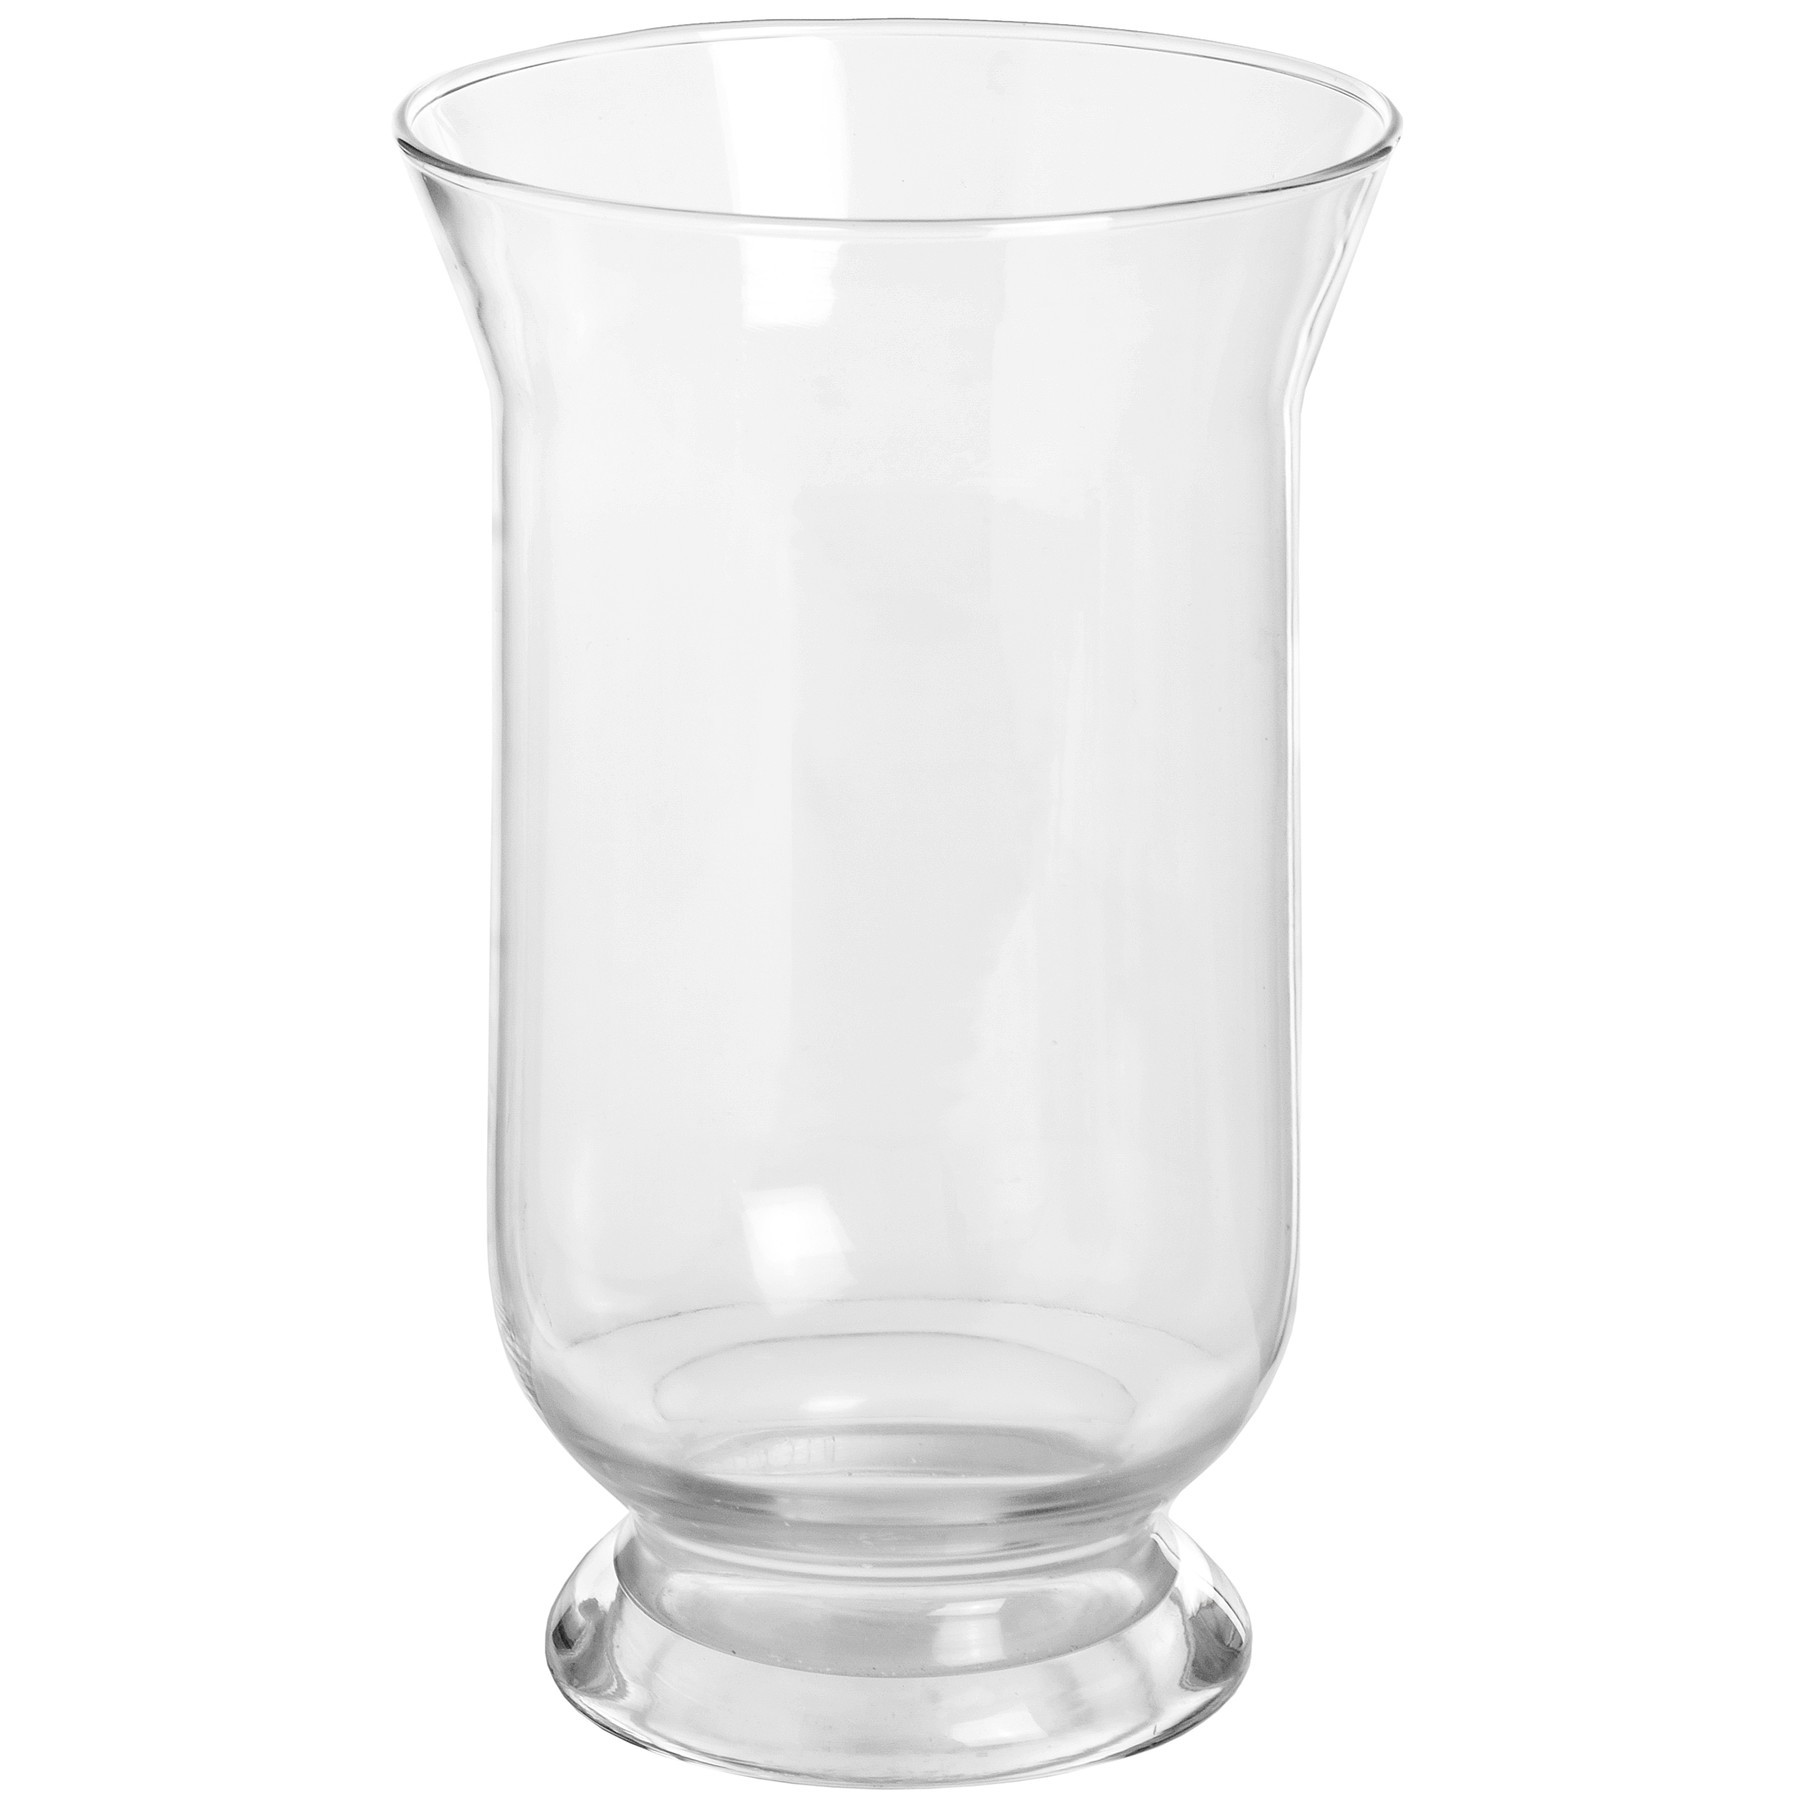 dollar tree glass vases of vases design ideas hurricane vases wholesale large and small best for decorating enchanting for adorable dining table the optimum vase glass hurricane vases wholesale elegant simple design